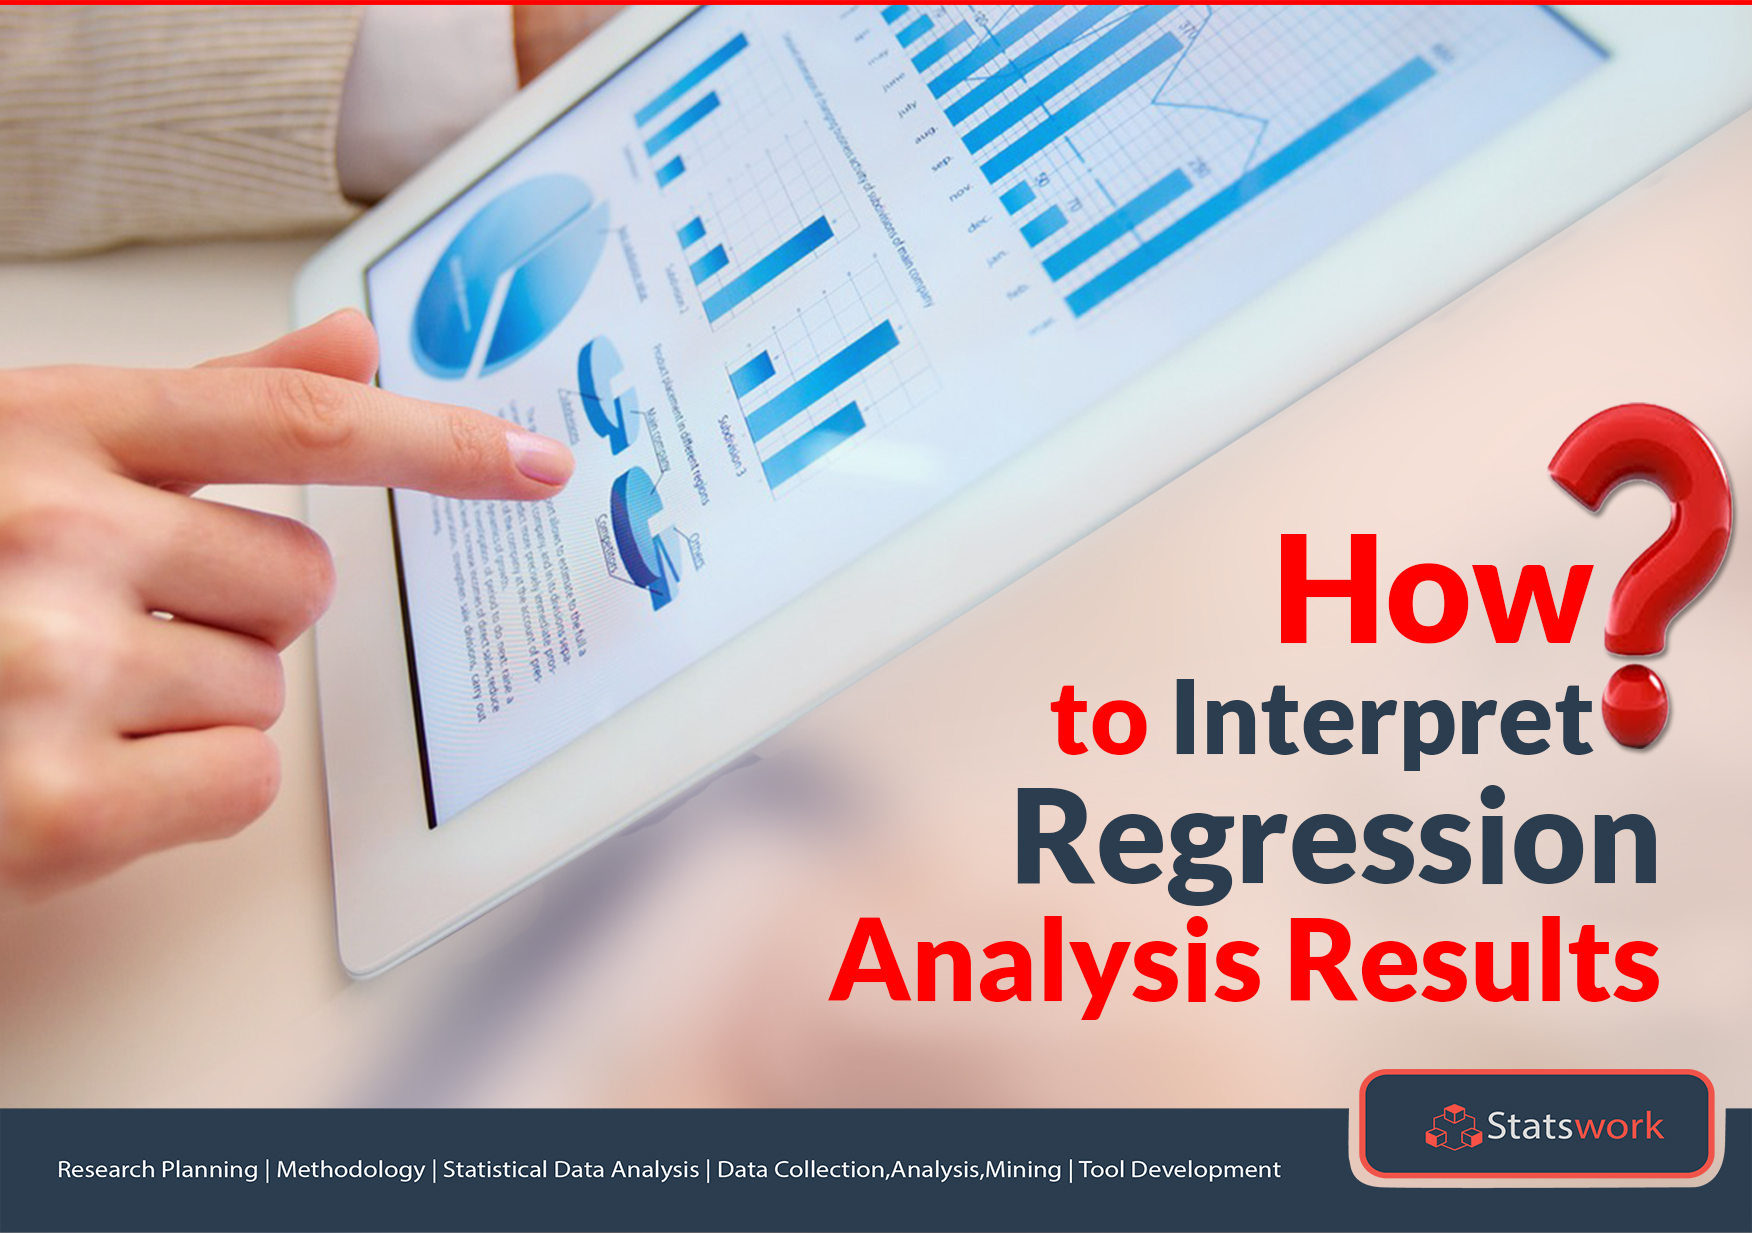 How to Interpret Regression Analysis Results: P-values & Coefficients?